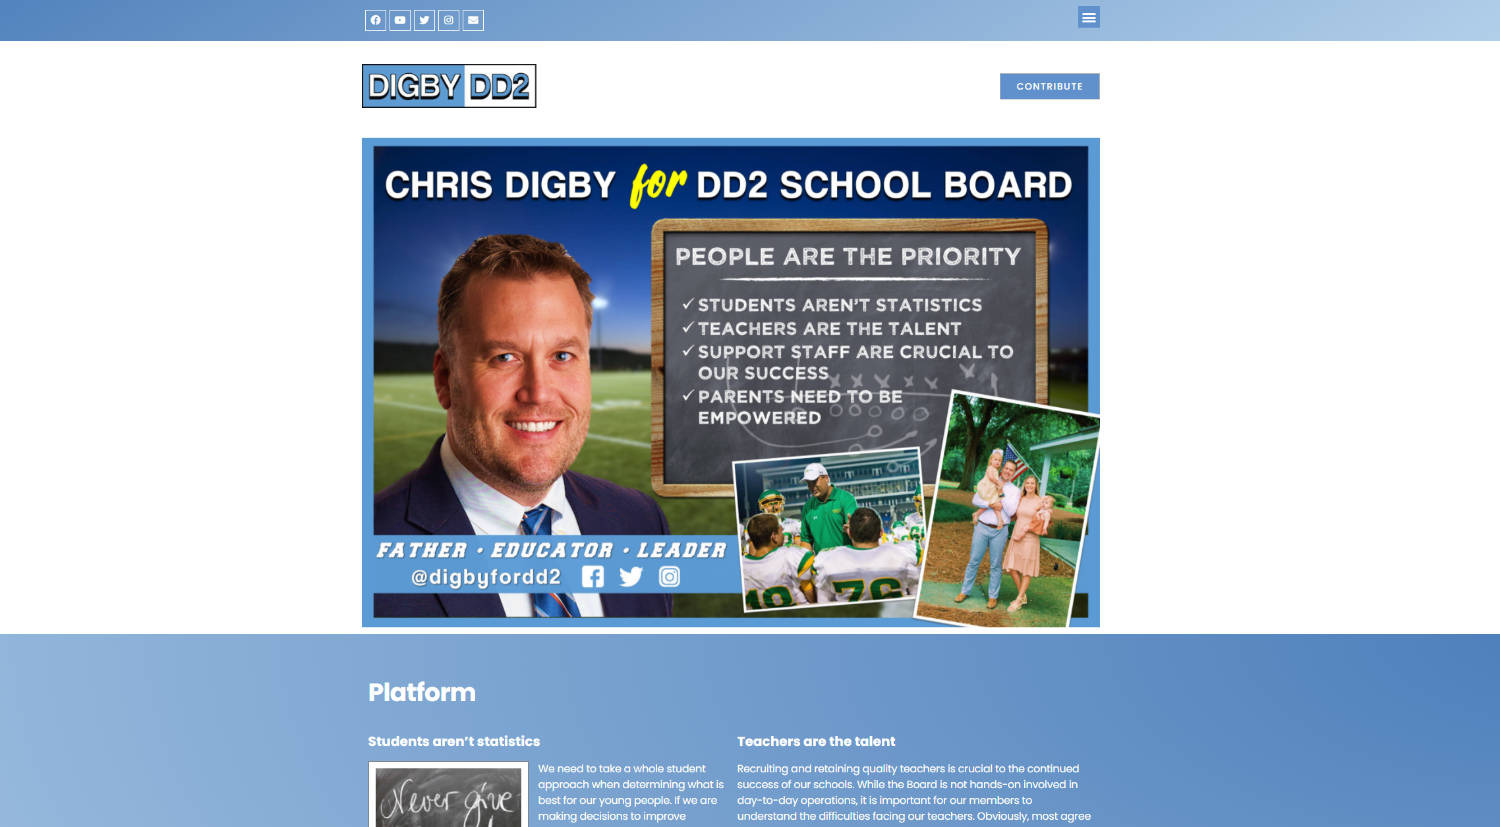 Chris Digby for DD2 School District Board